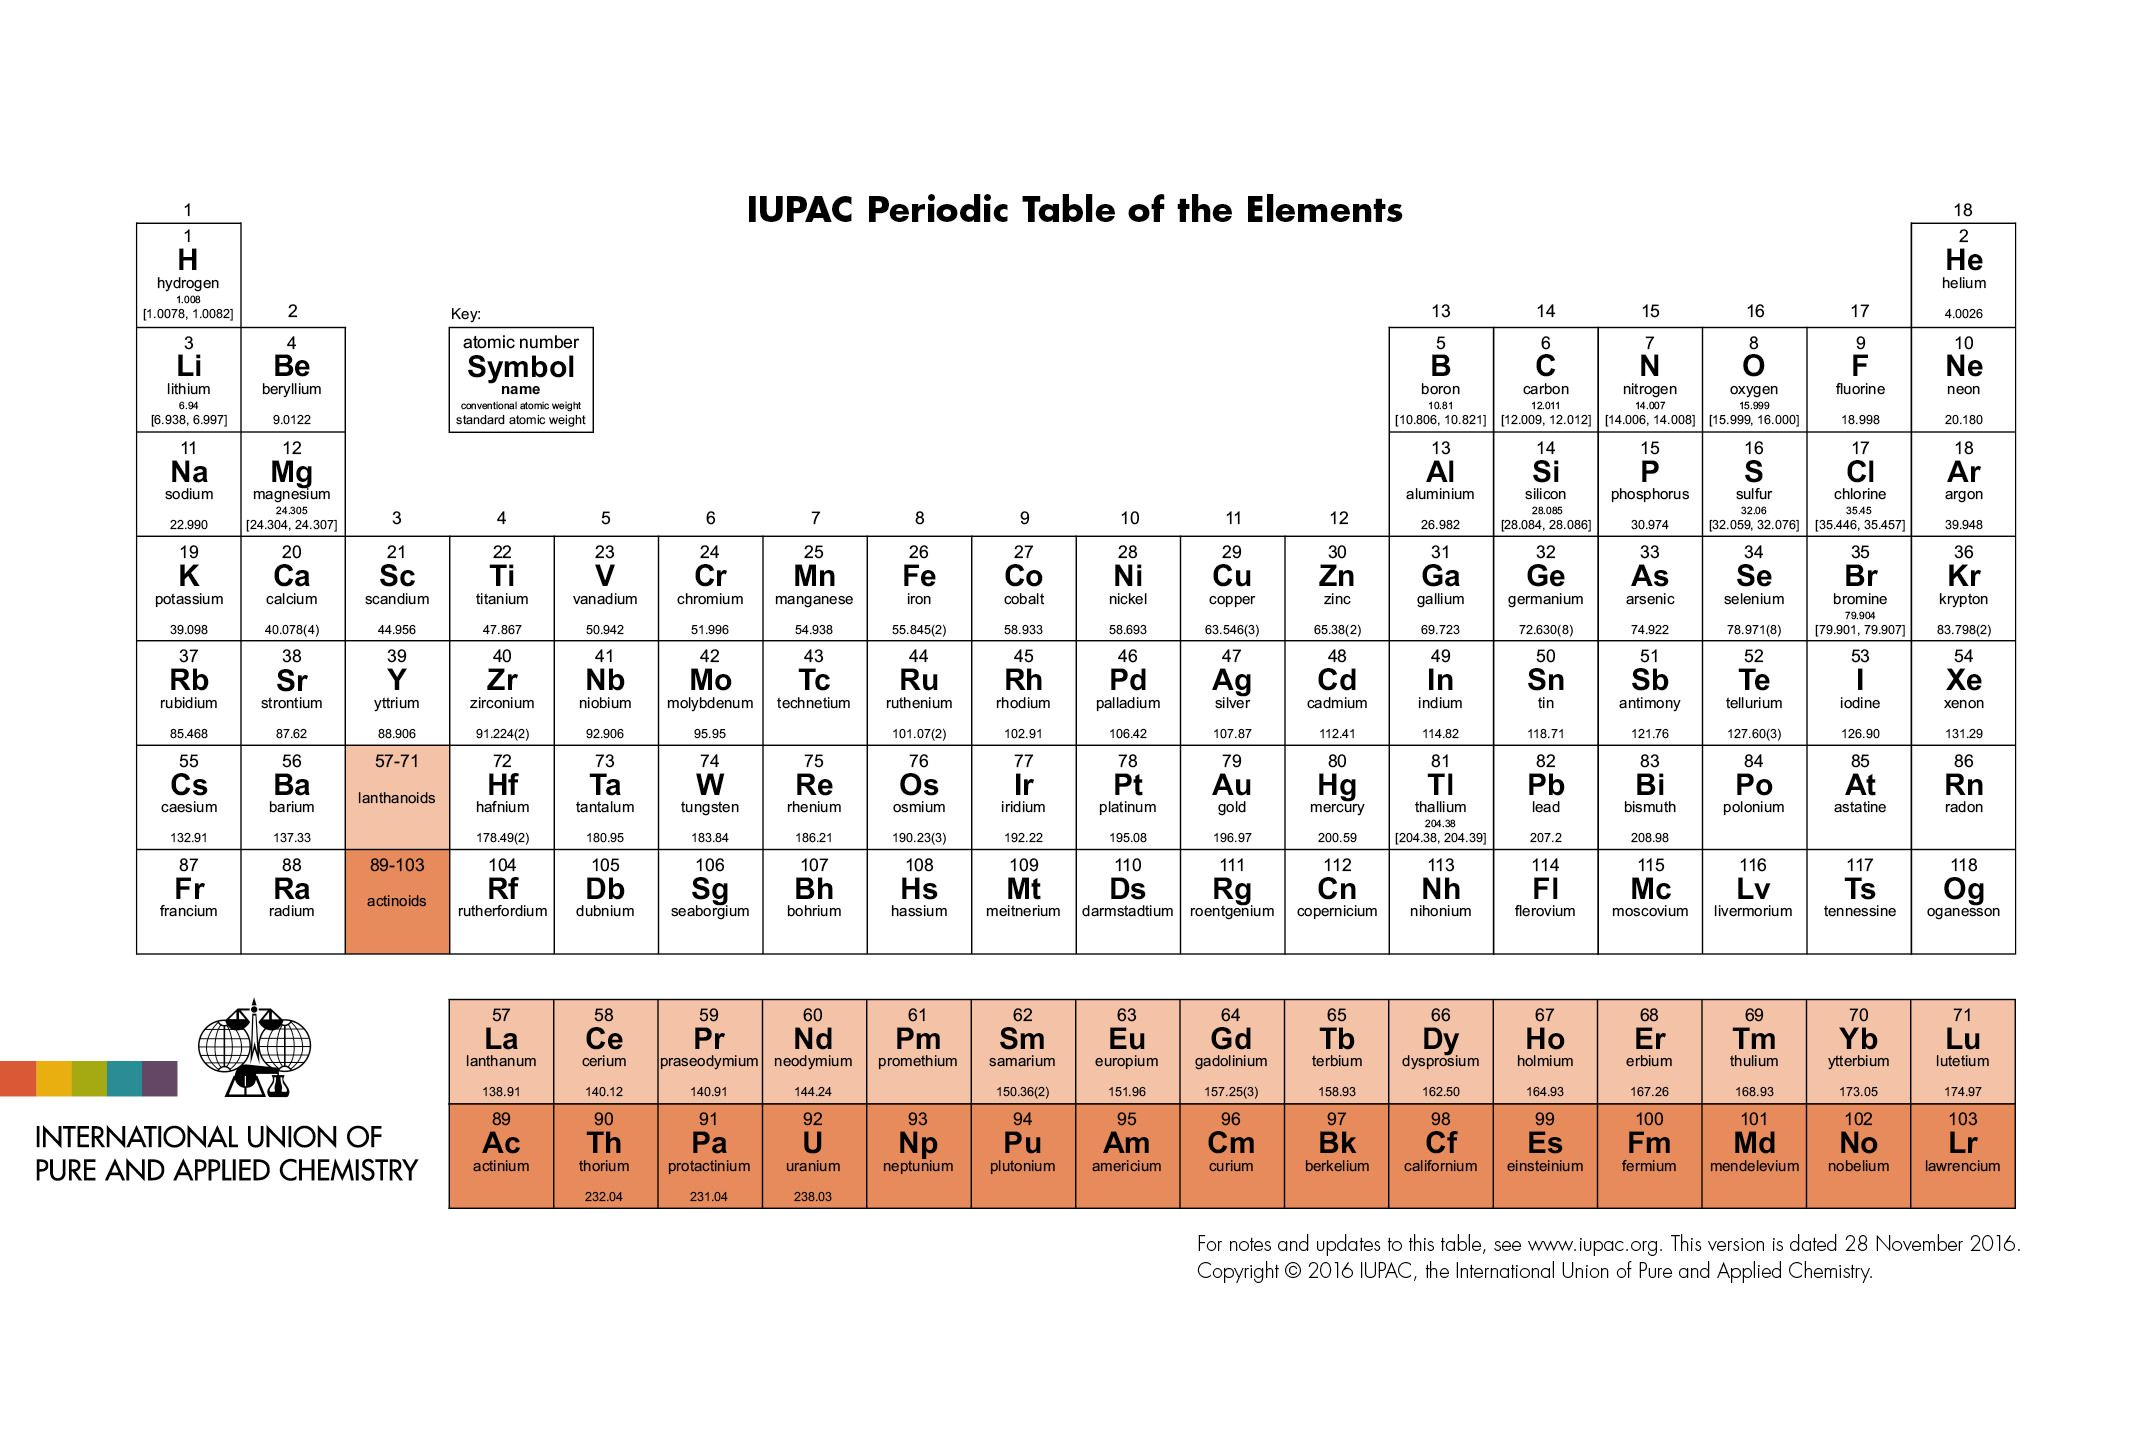 Iupac Periodic Table 28nov16